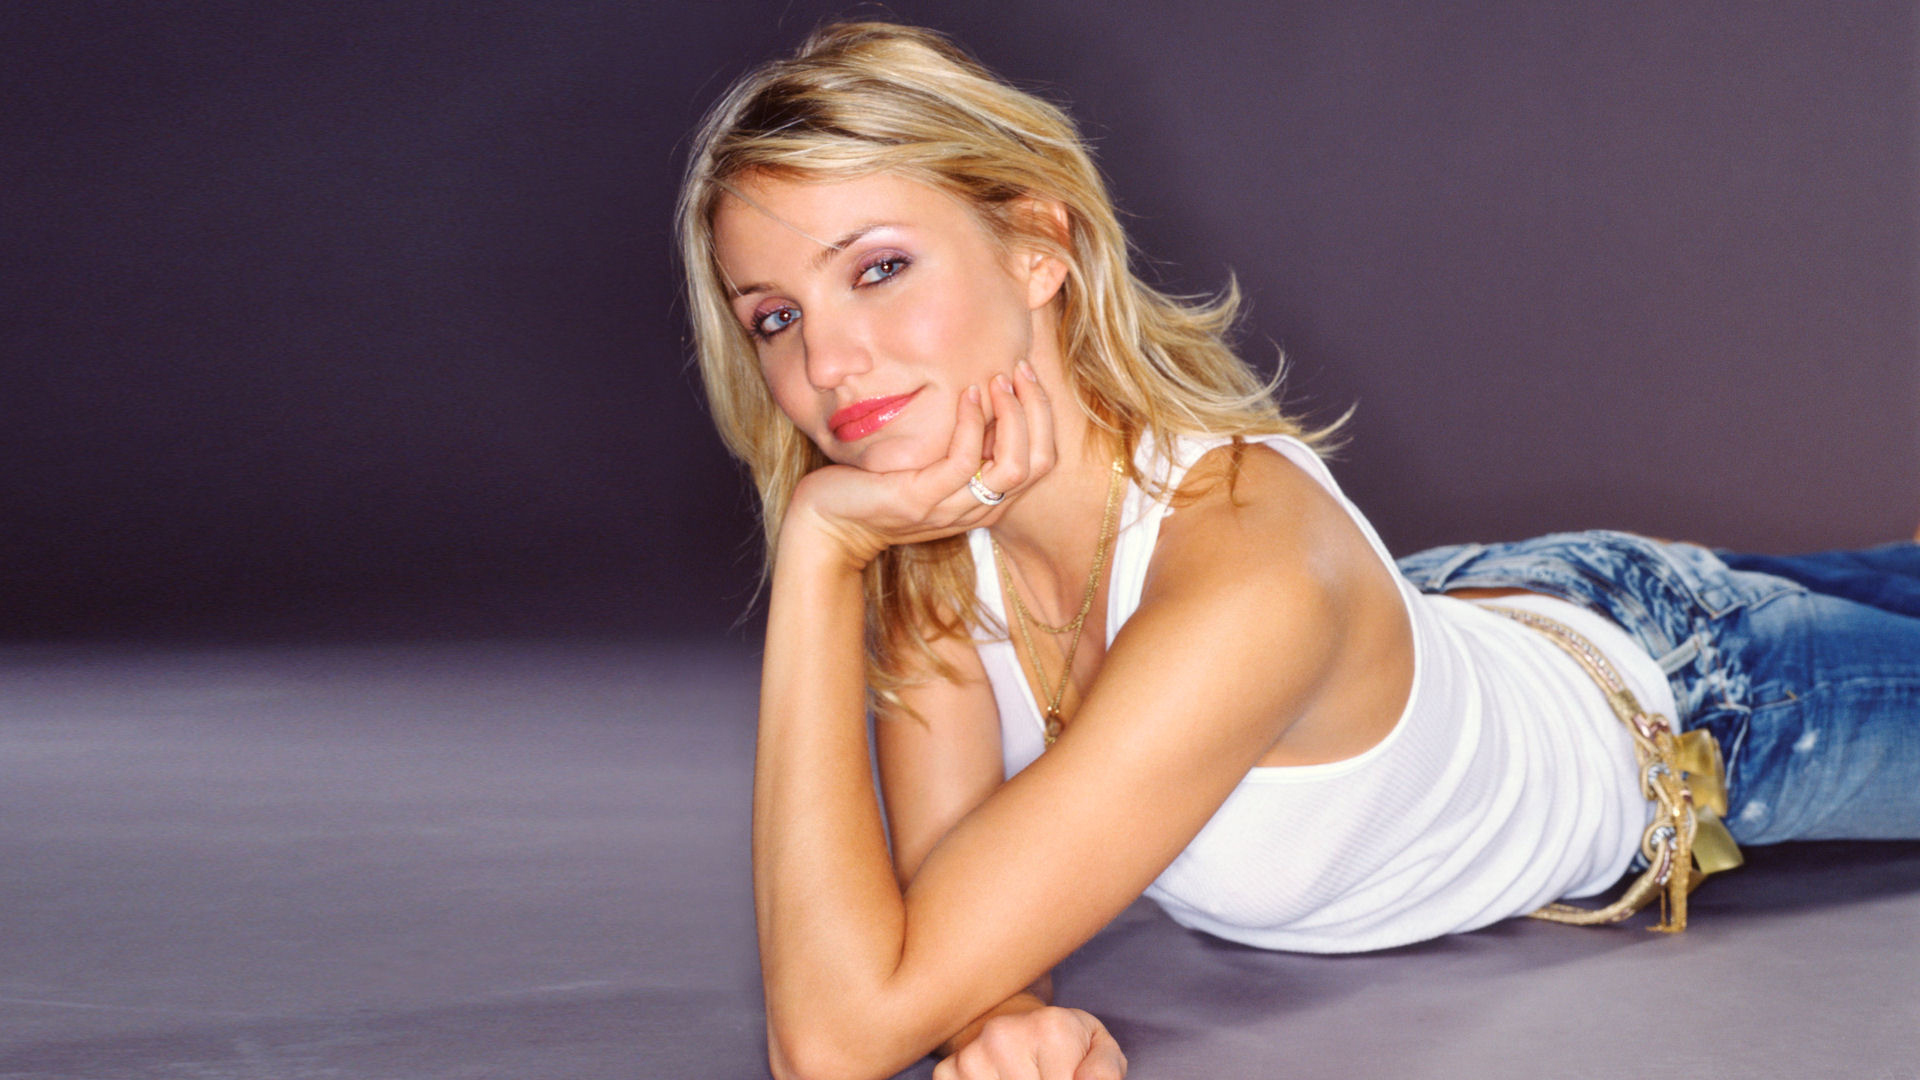 Cameron Diaz Wallpapers 1920x1080